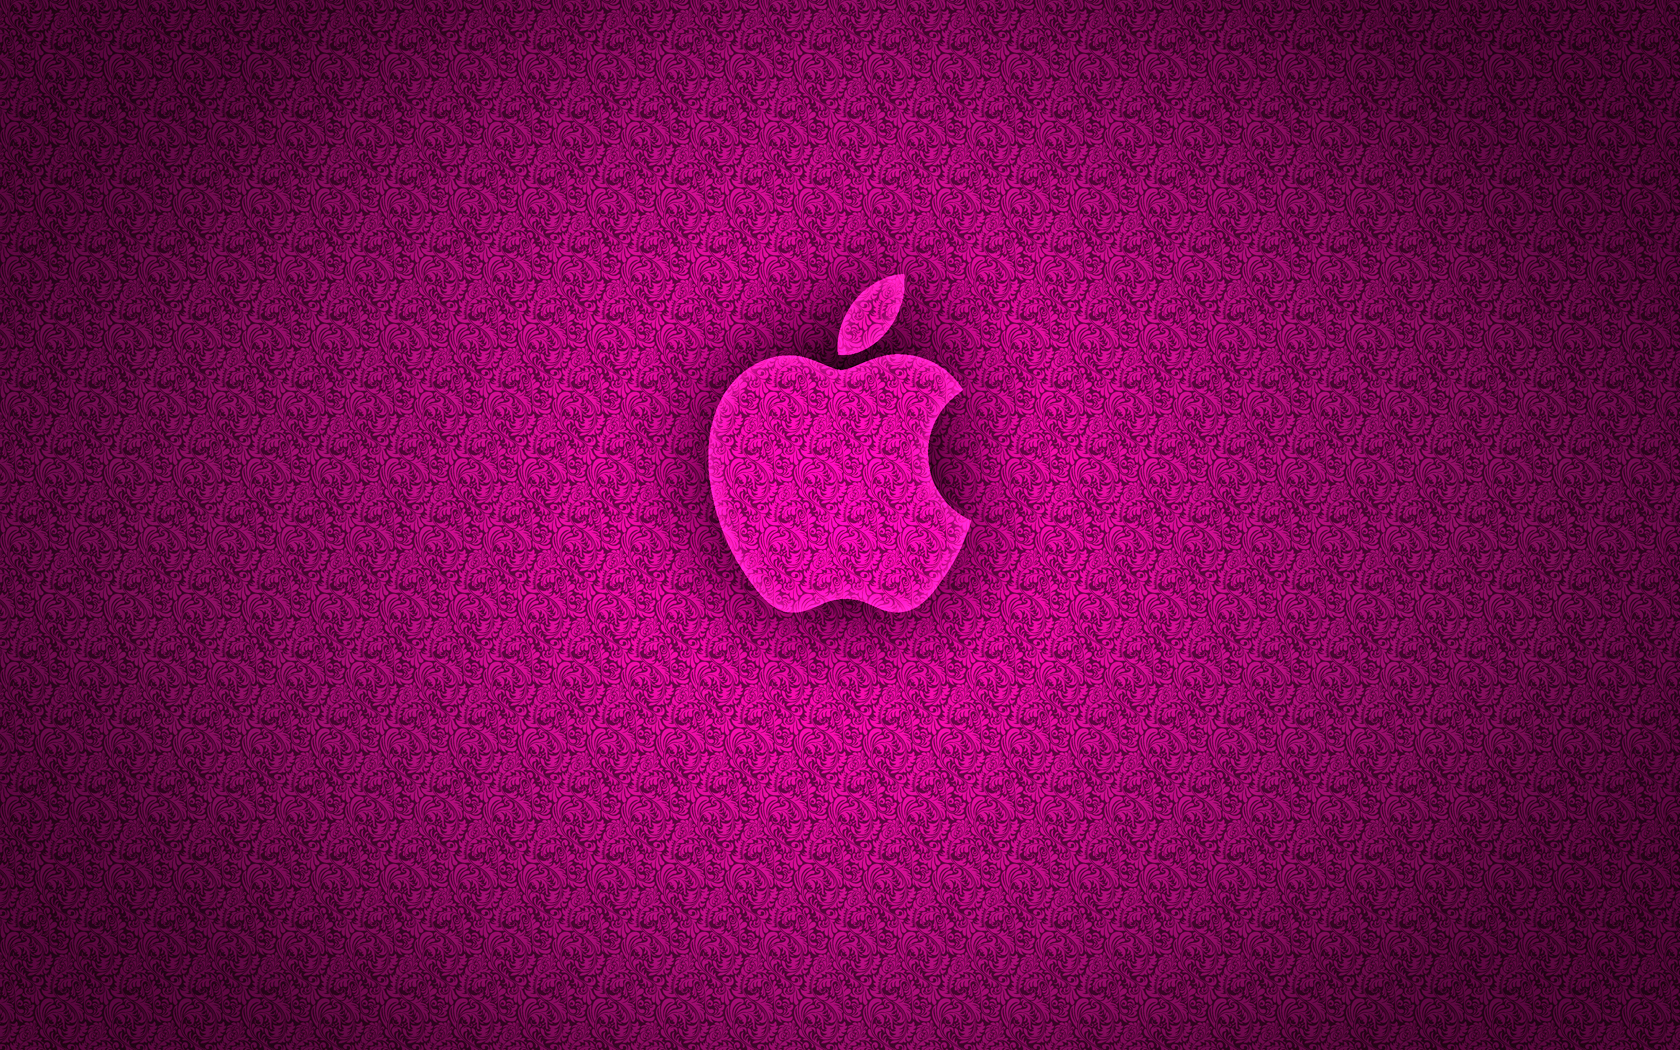 jj_apple_wallpaper_1680x1050px_0310_pink